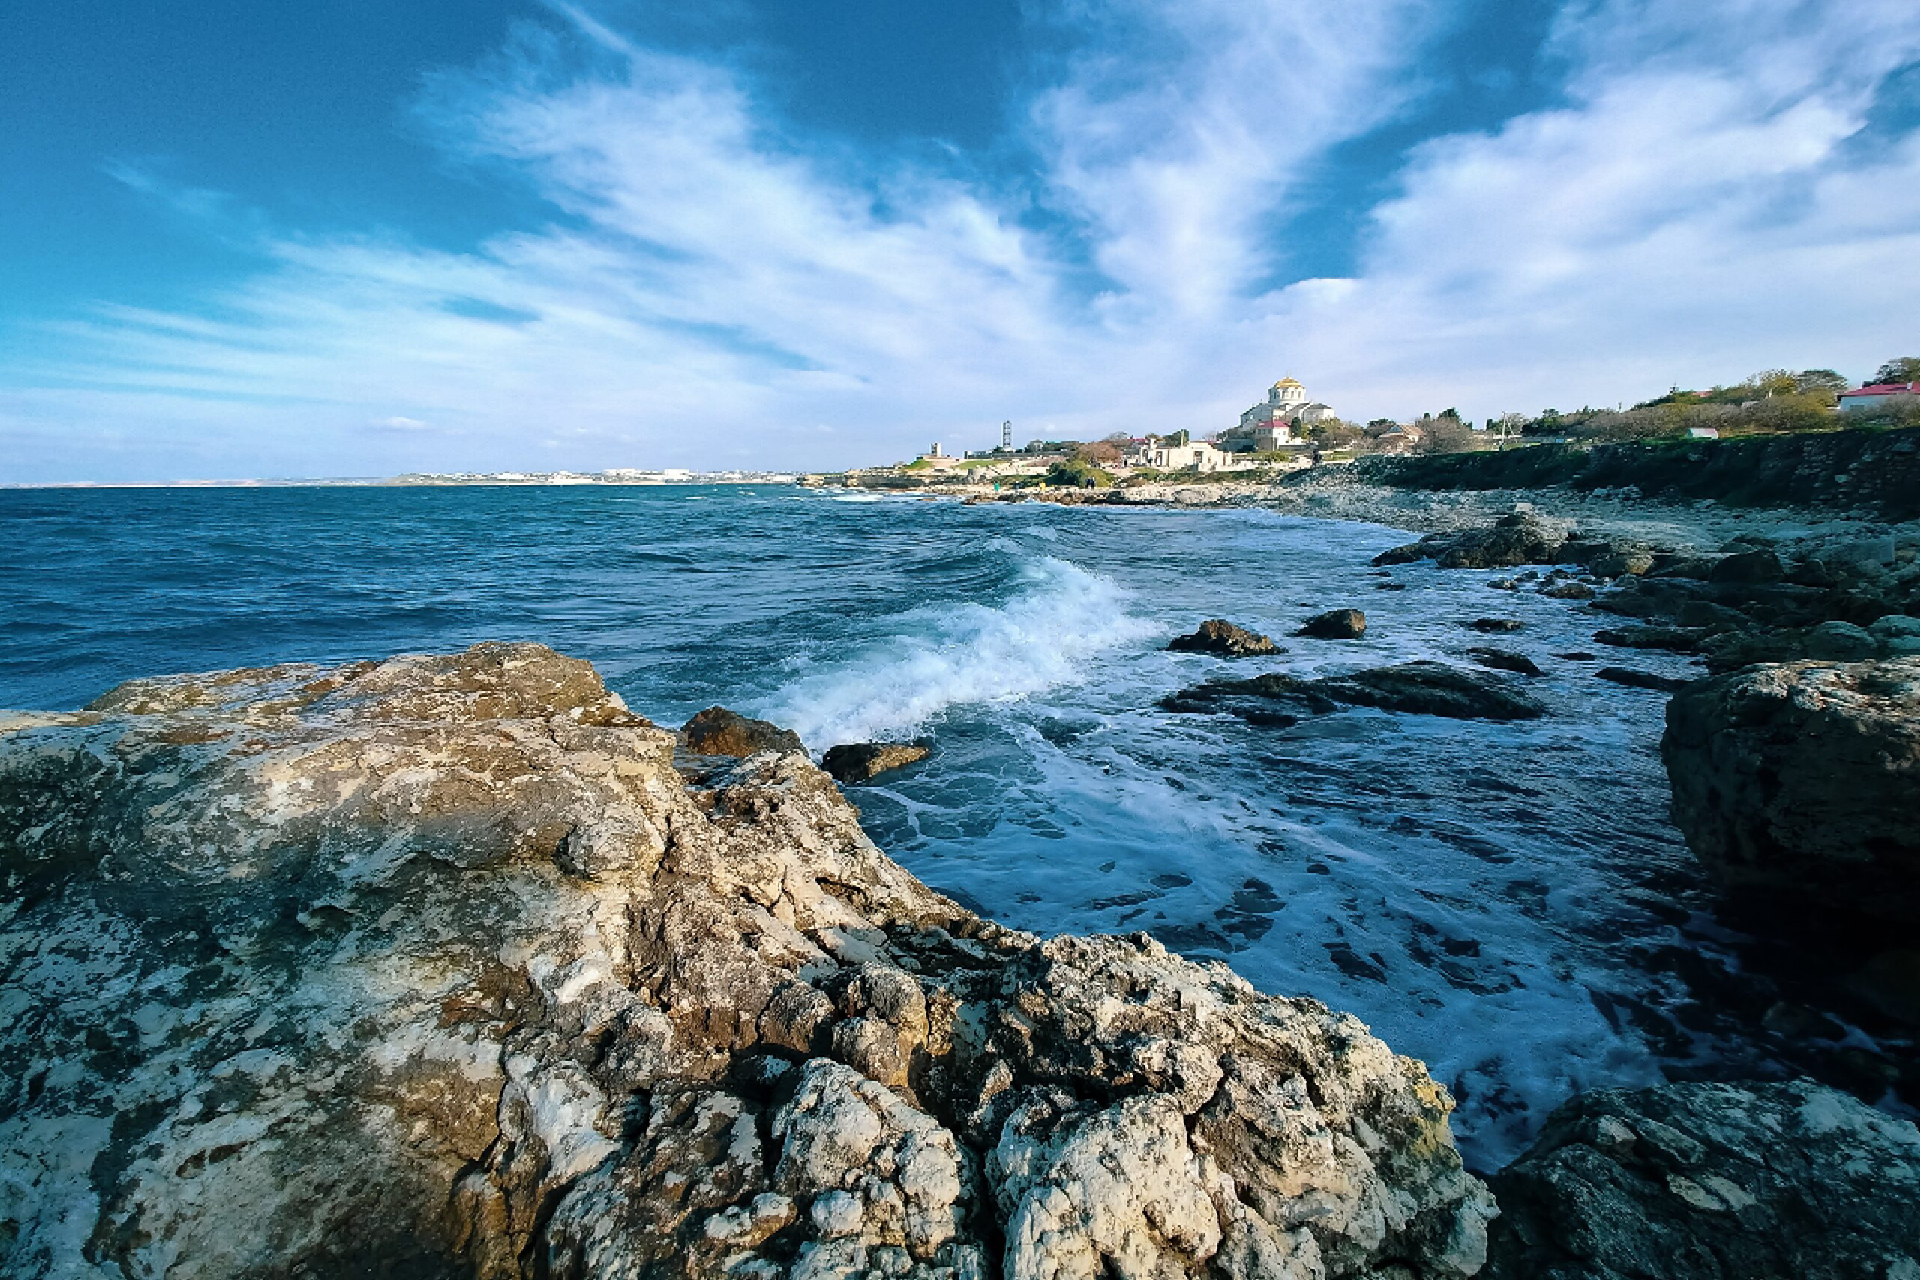 Rocky shore of the sea, ancient city in the background